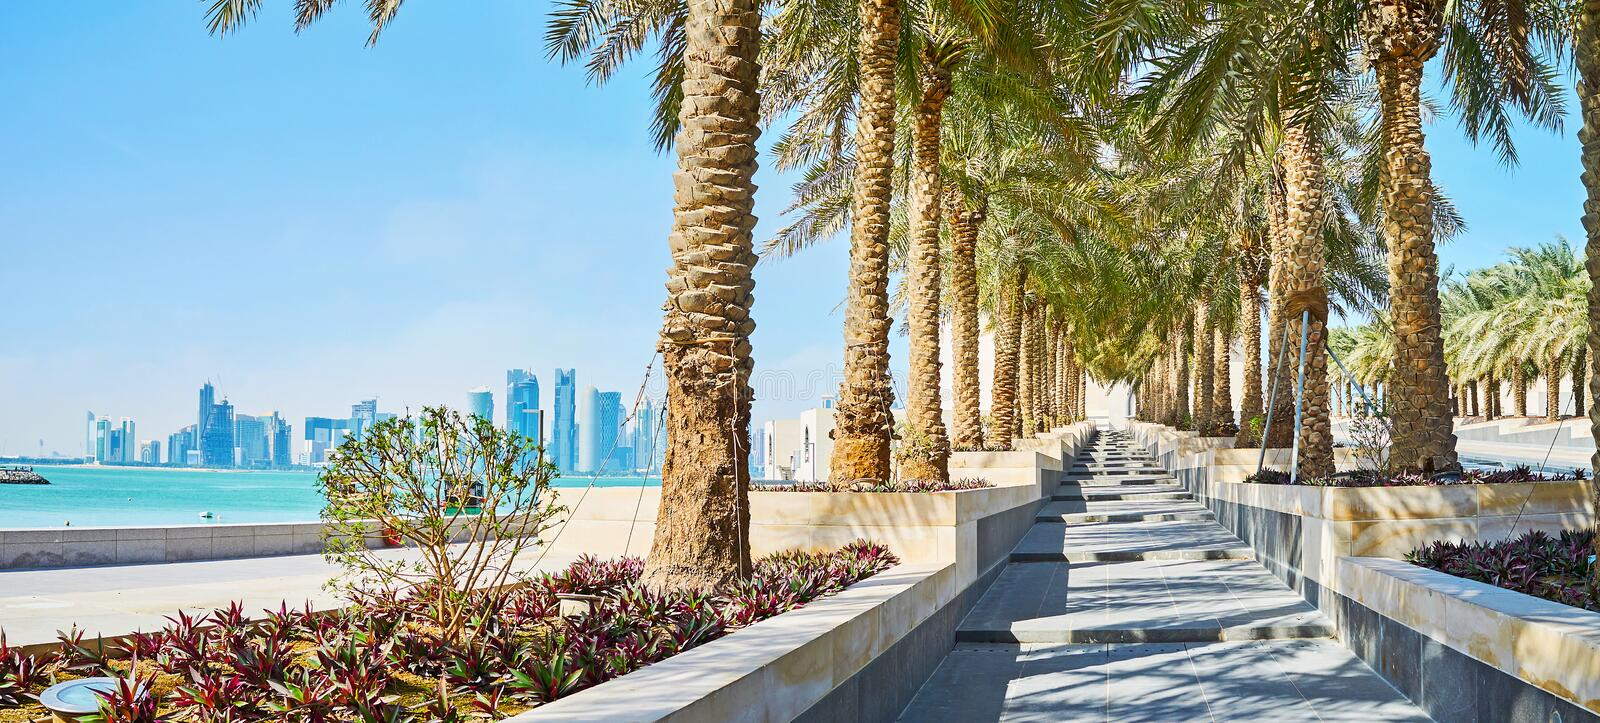 The seascape through the greenery, Doha, Qatar. The walk in Museum park with aview on skyscrapers of the West Bay and the bright blue waters of Persian Gulf royalty free stock photo